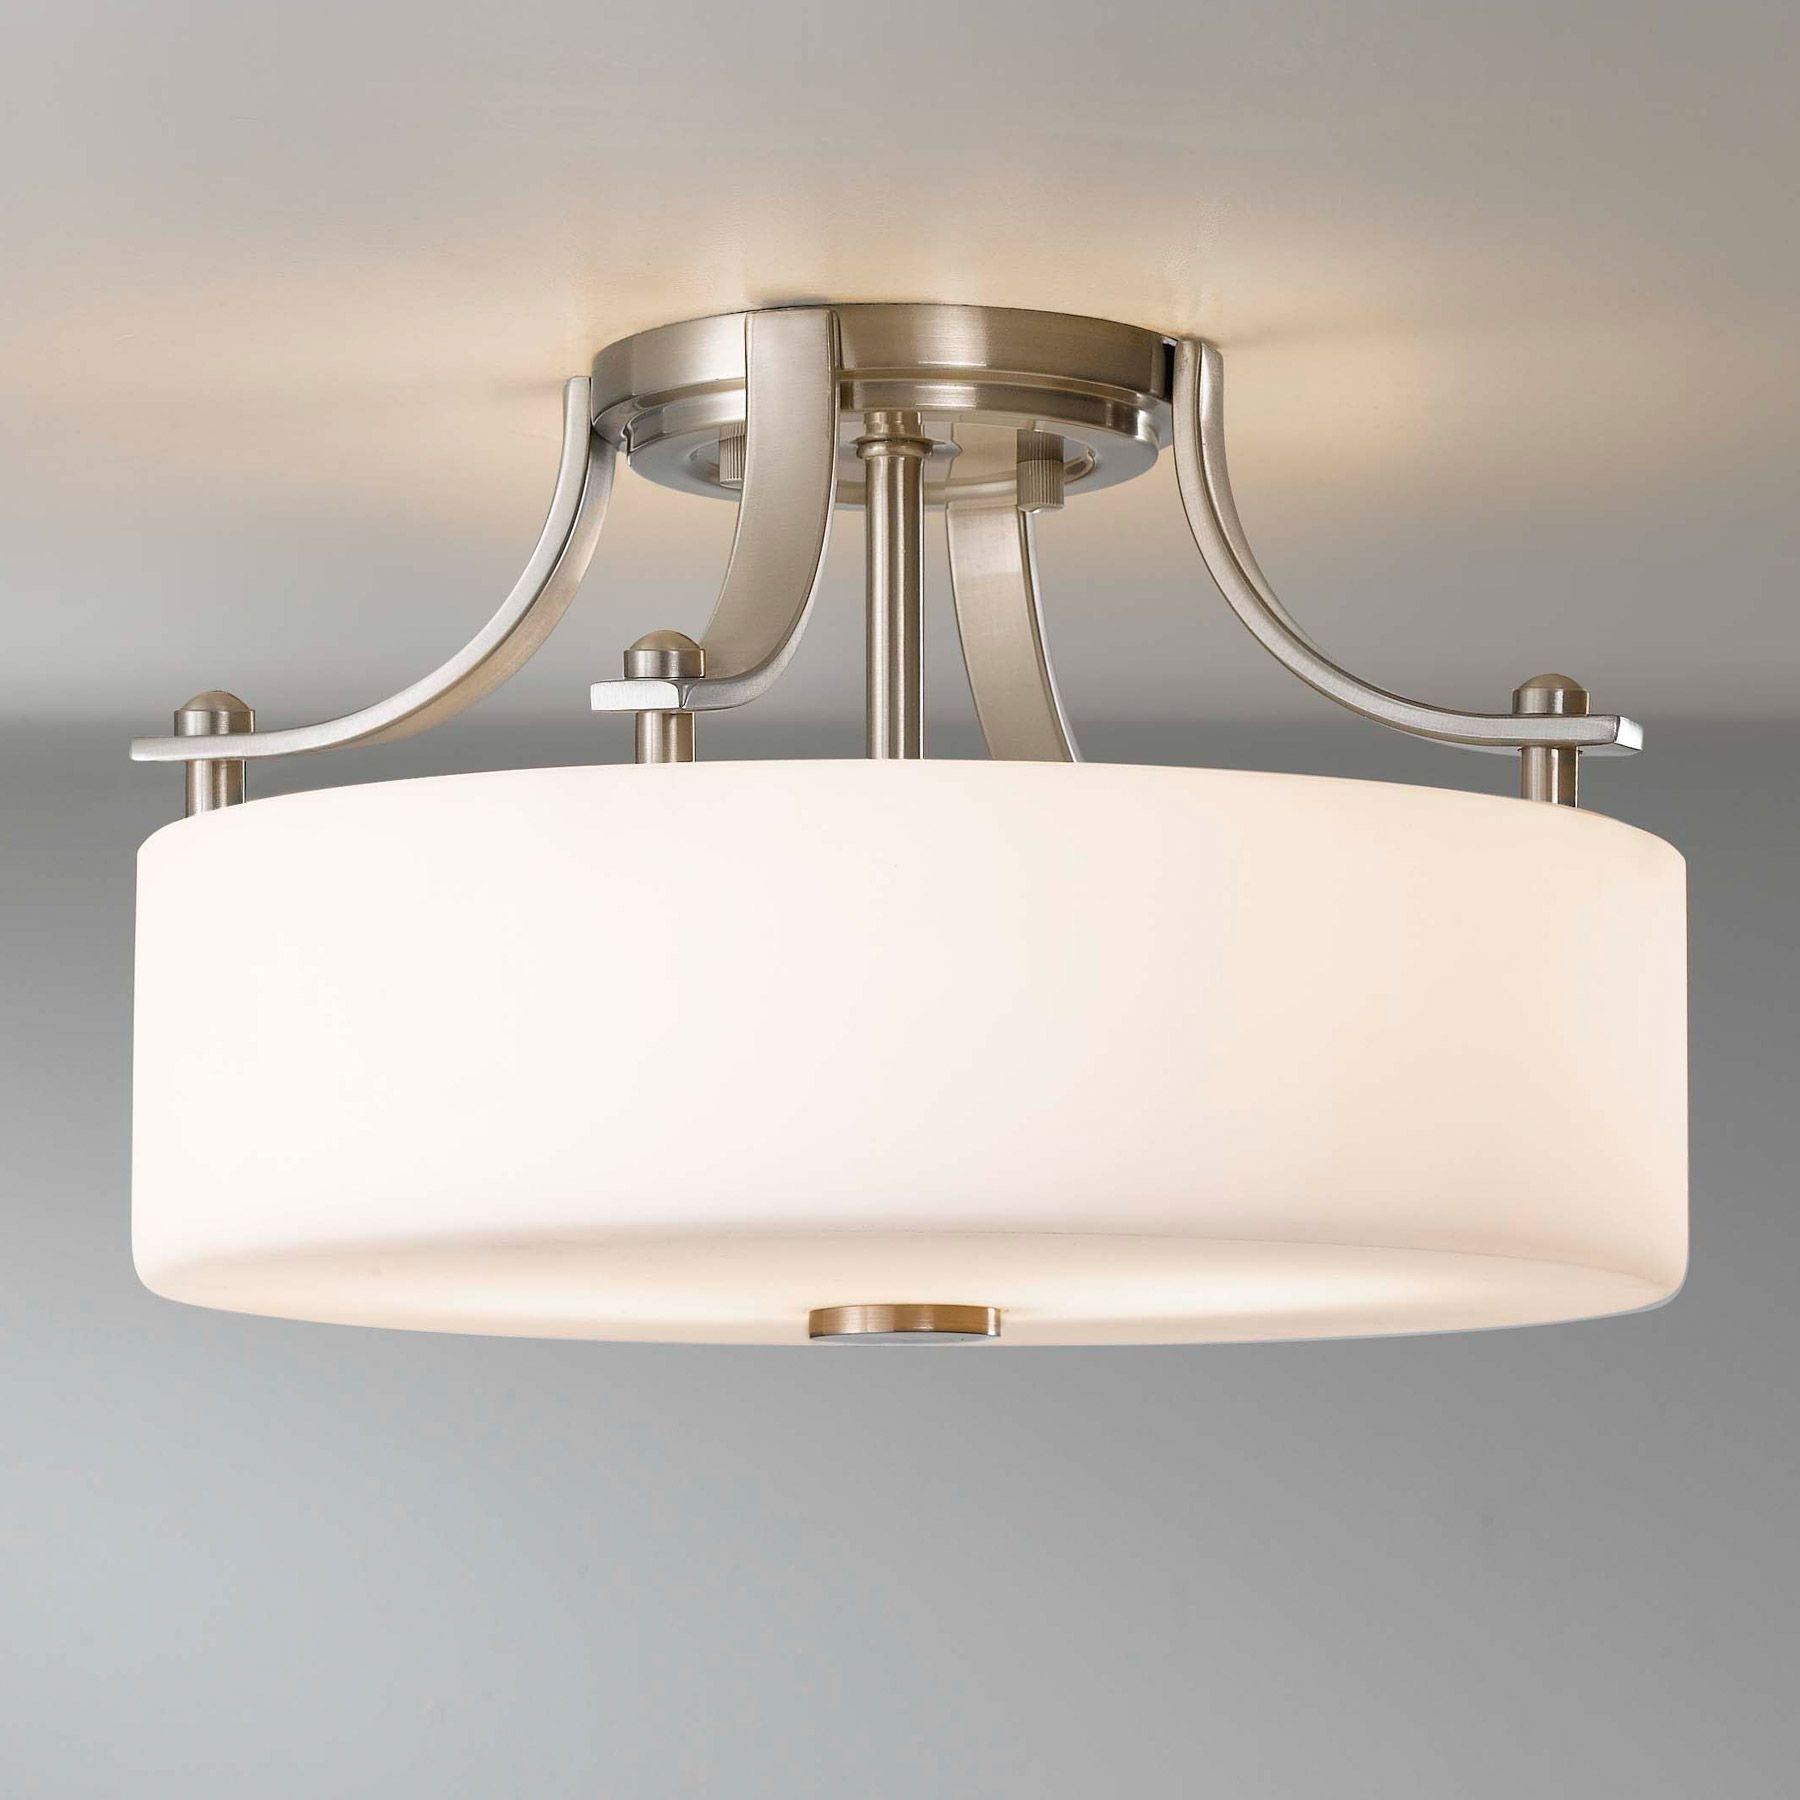 Light fixtures for kitchen ceiling - Find This Pin And More On Flush Mount Ceiling Light Fixtures